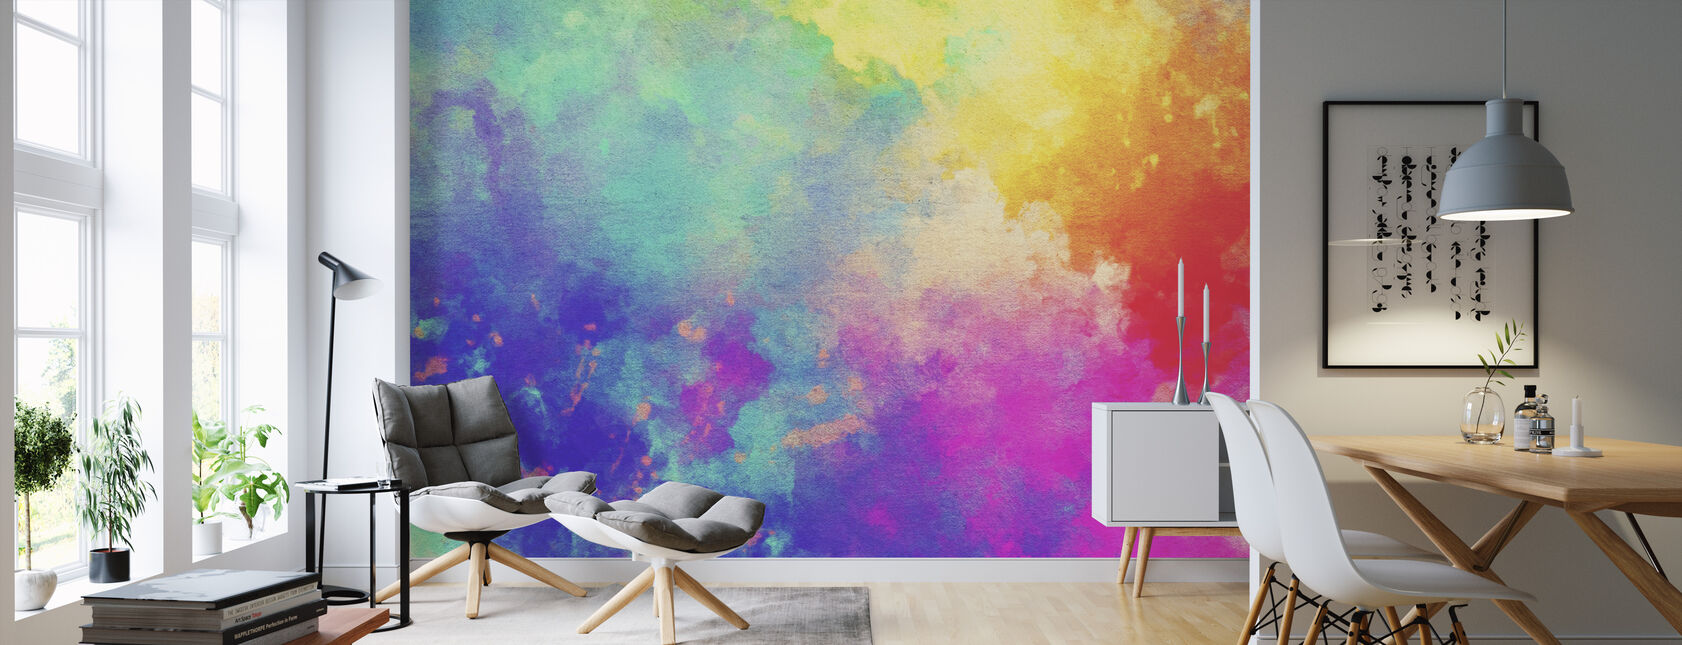 Watercolor Textured Background - Wallpaper - Living Room